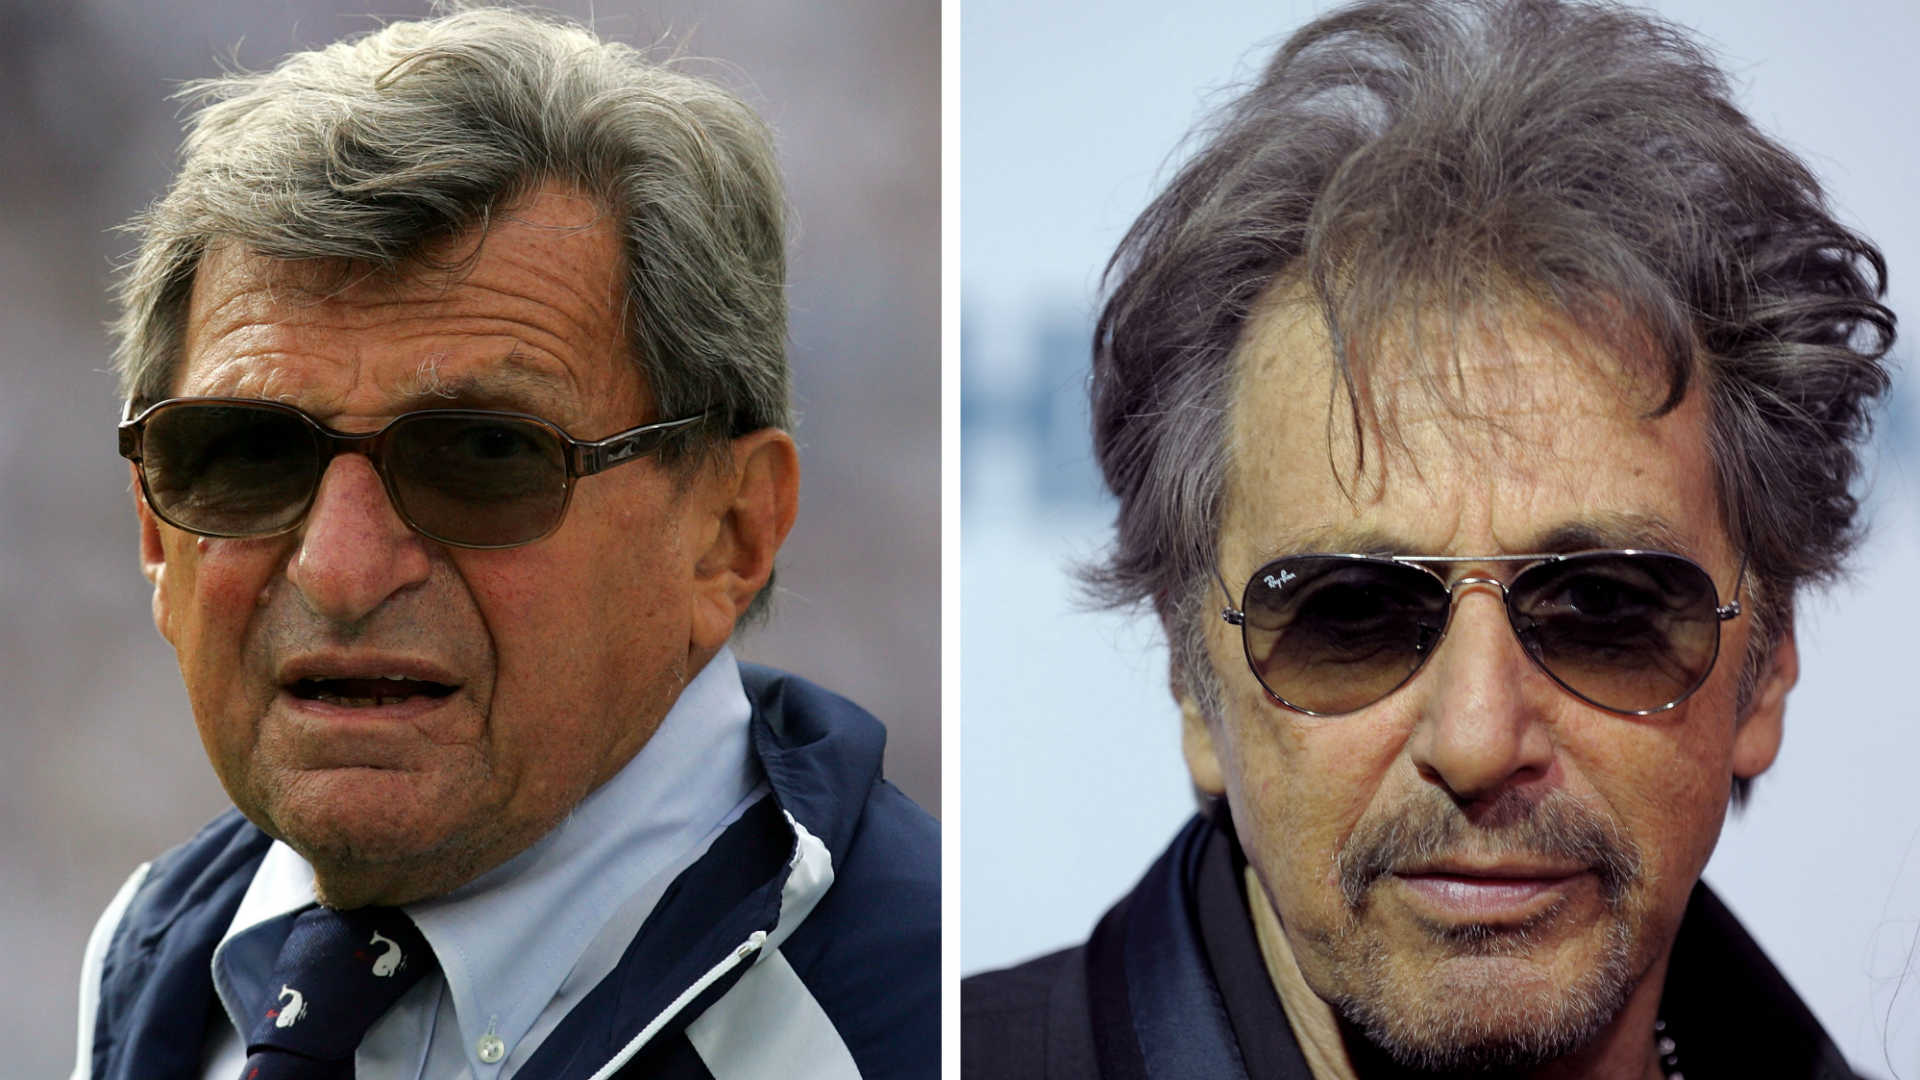 Al Pacino to star as Penn State's Joe Paterno in HBO biopic